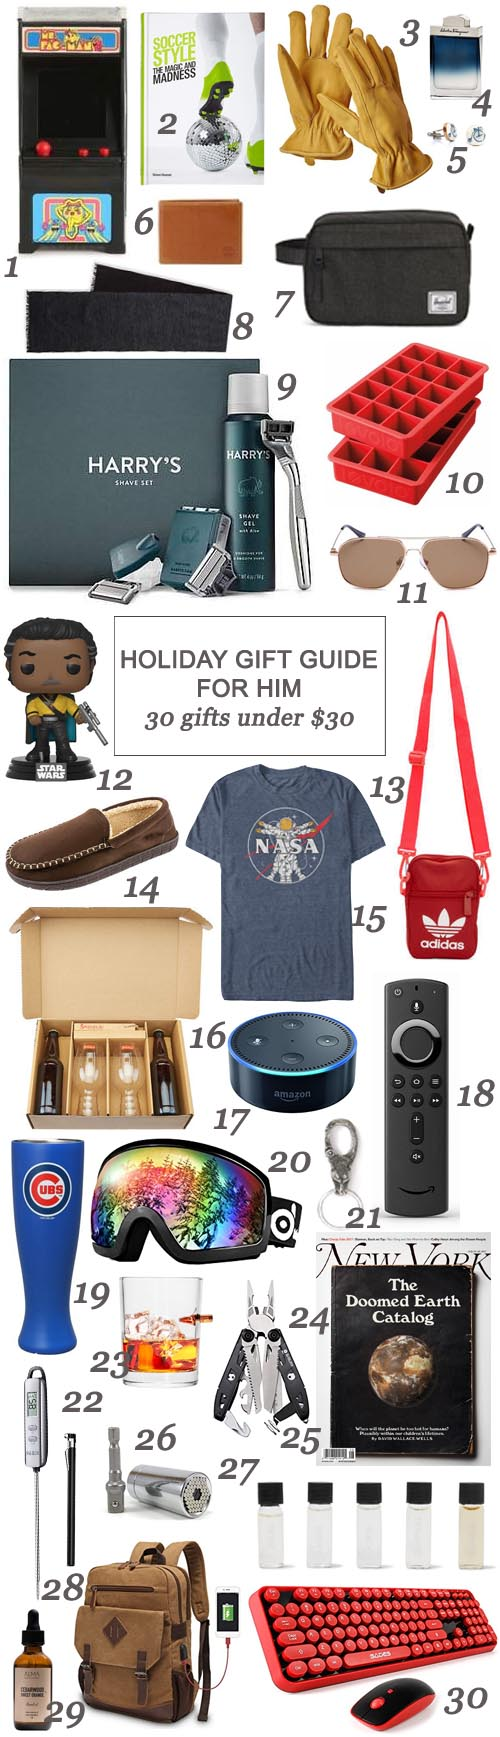 San Antonio lifestyle blogger, Cris Stone, has gathered up a fab collection of gift options for your brother, bestie, nephew, dad, and partner - all for under $30!